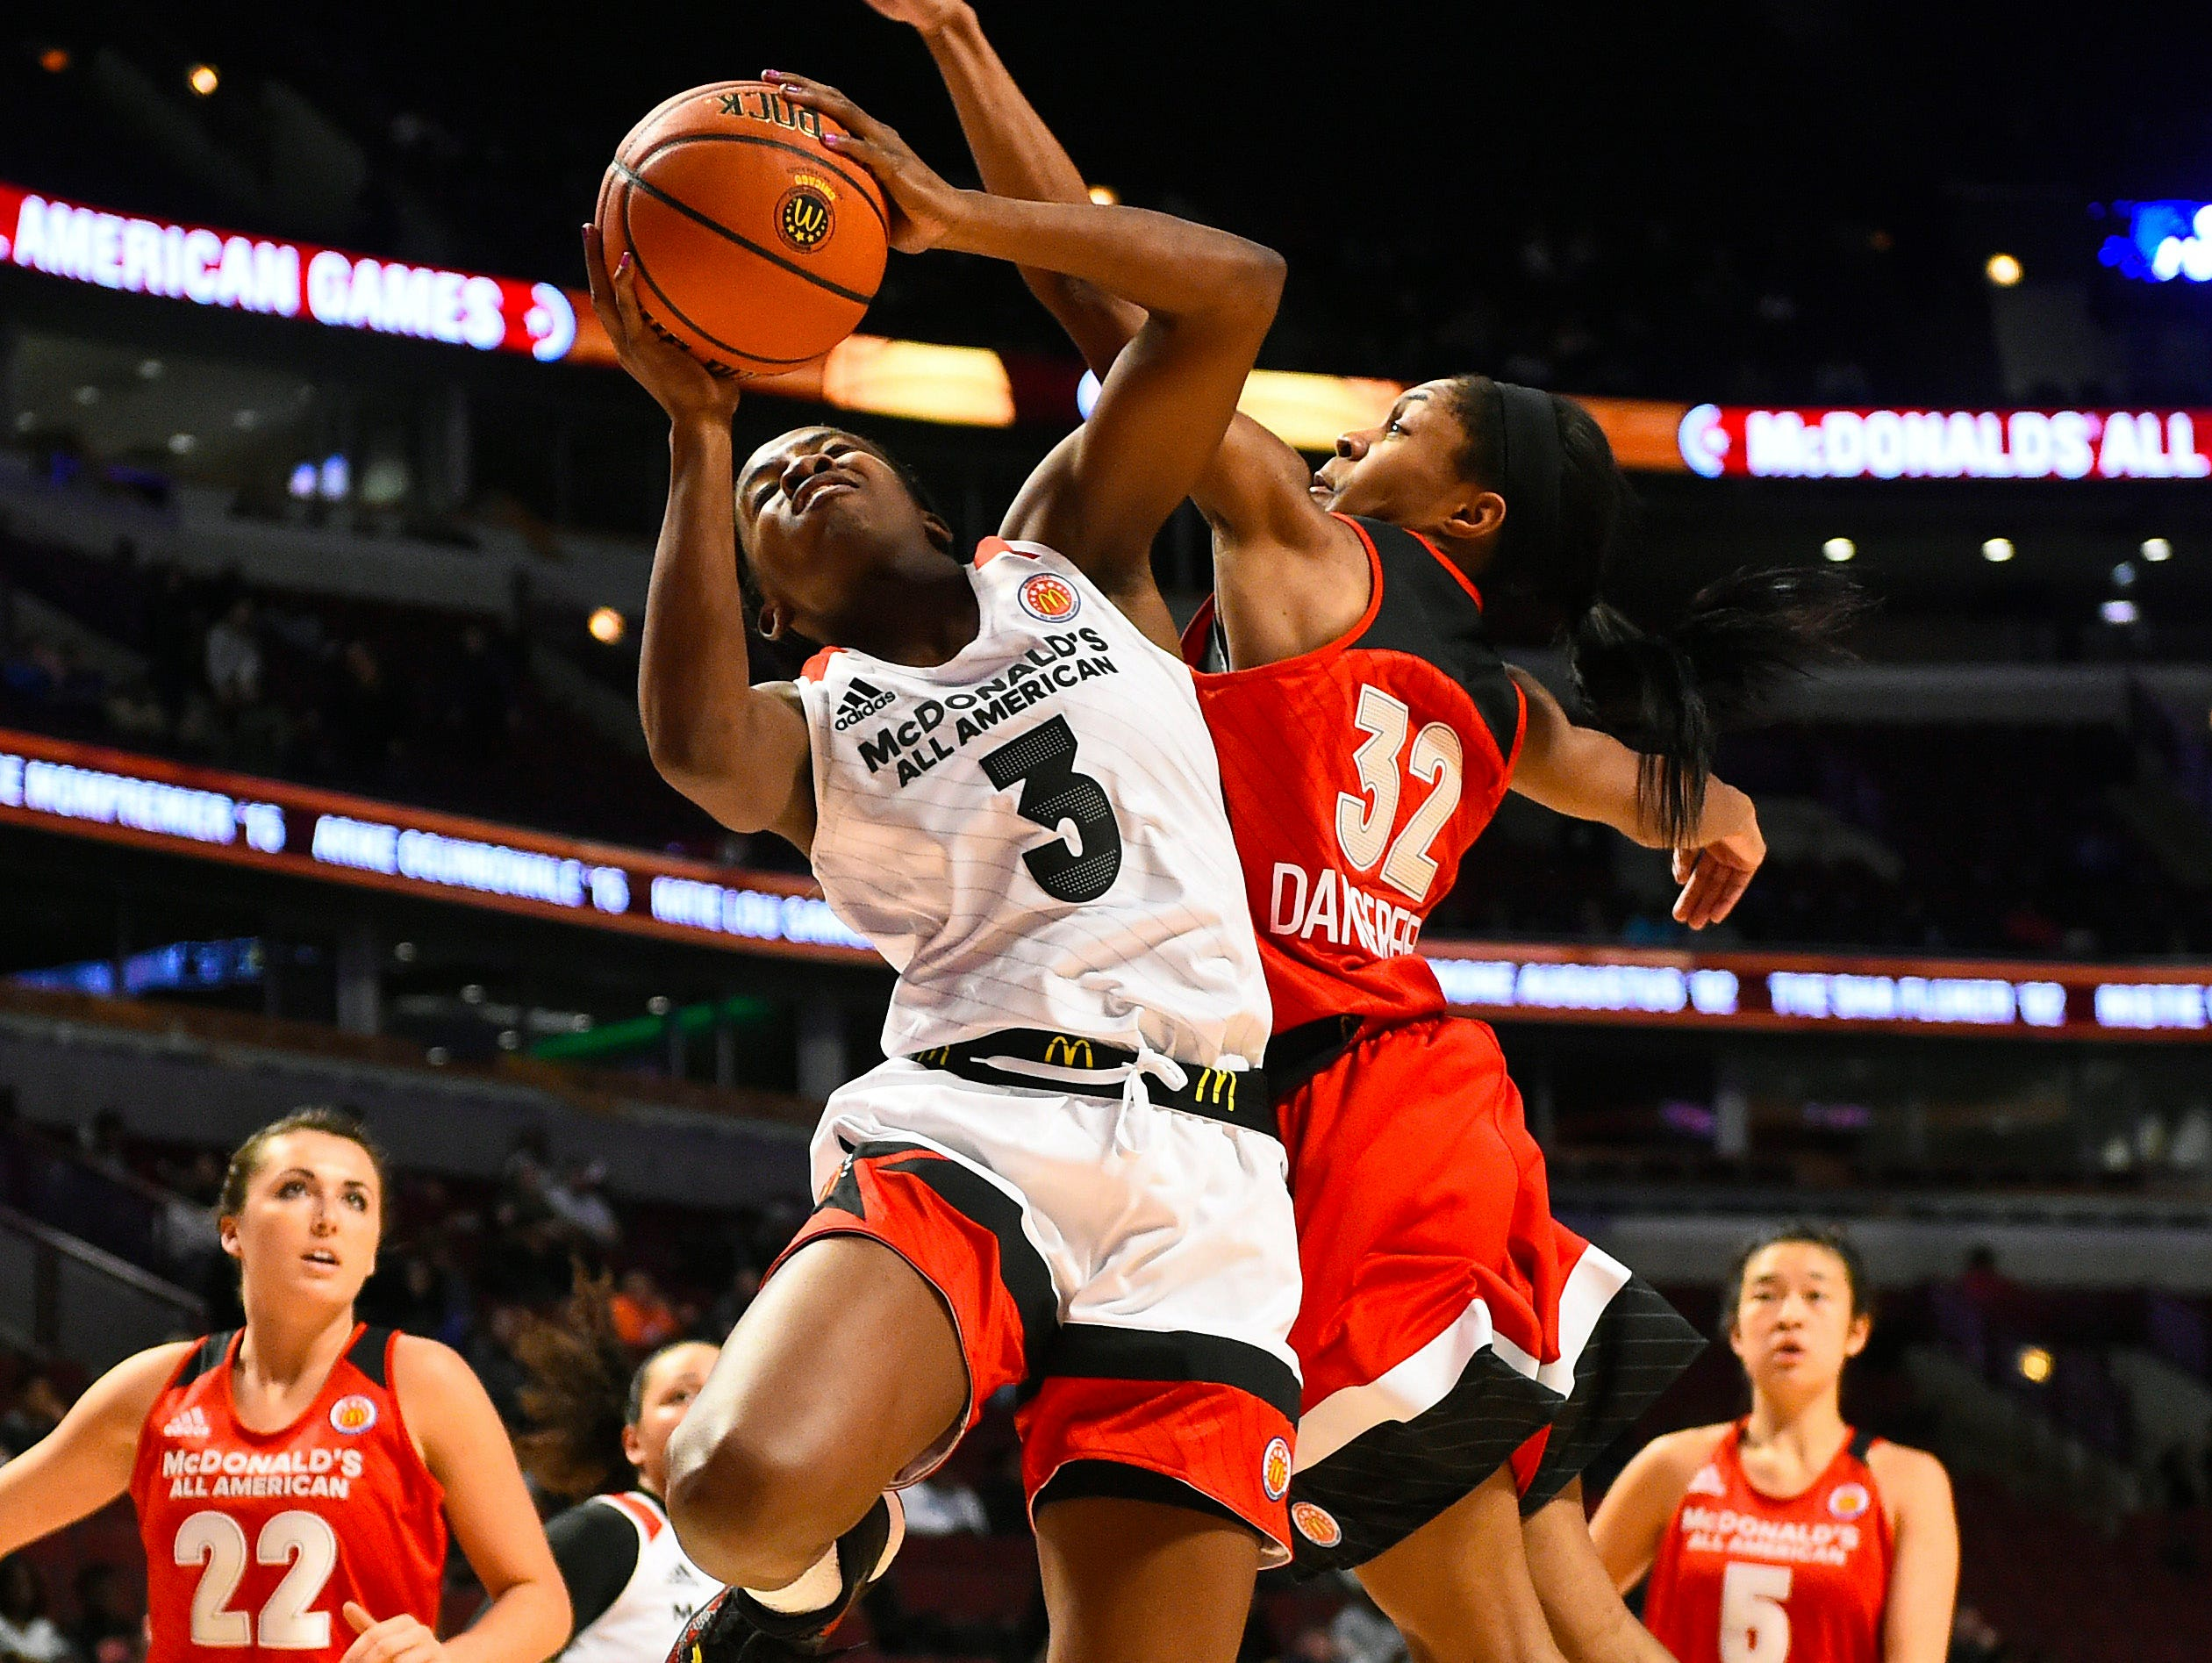 McDonalds High School All-American West player Jackie Young (3) shoots the ball against McDonalds High School All-American East player Crystal Dangerfield (32) during the second half at the United Center.